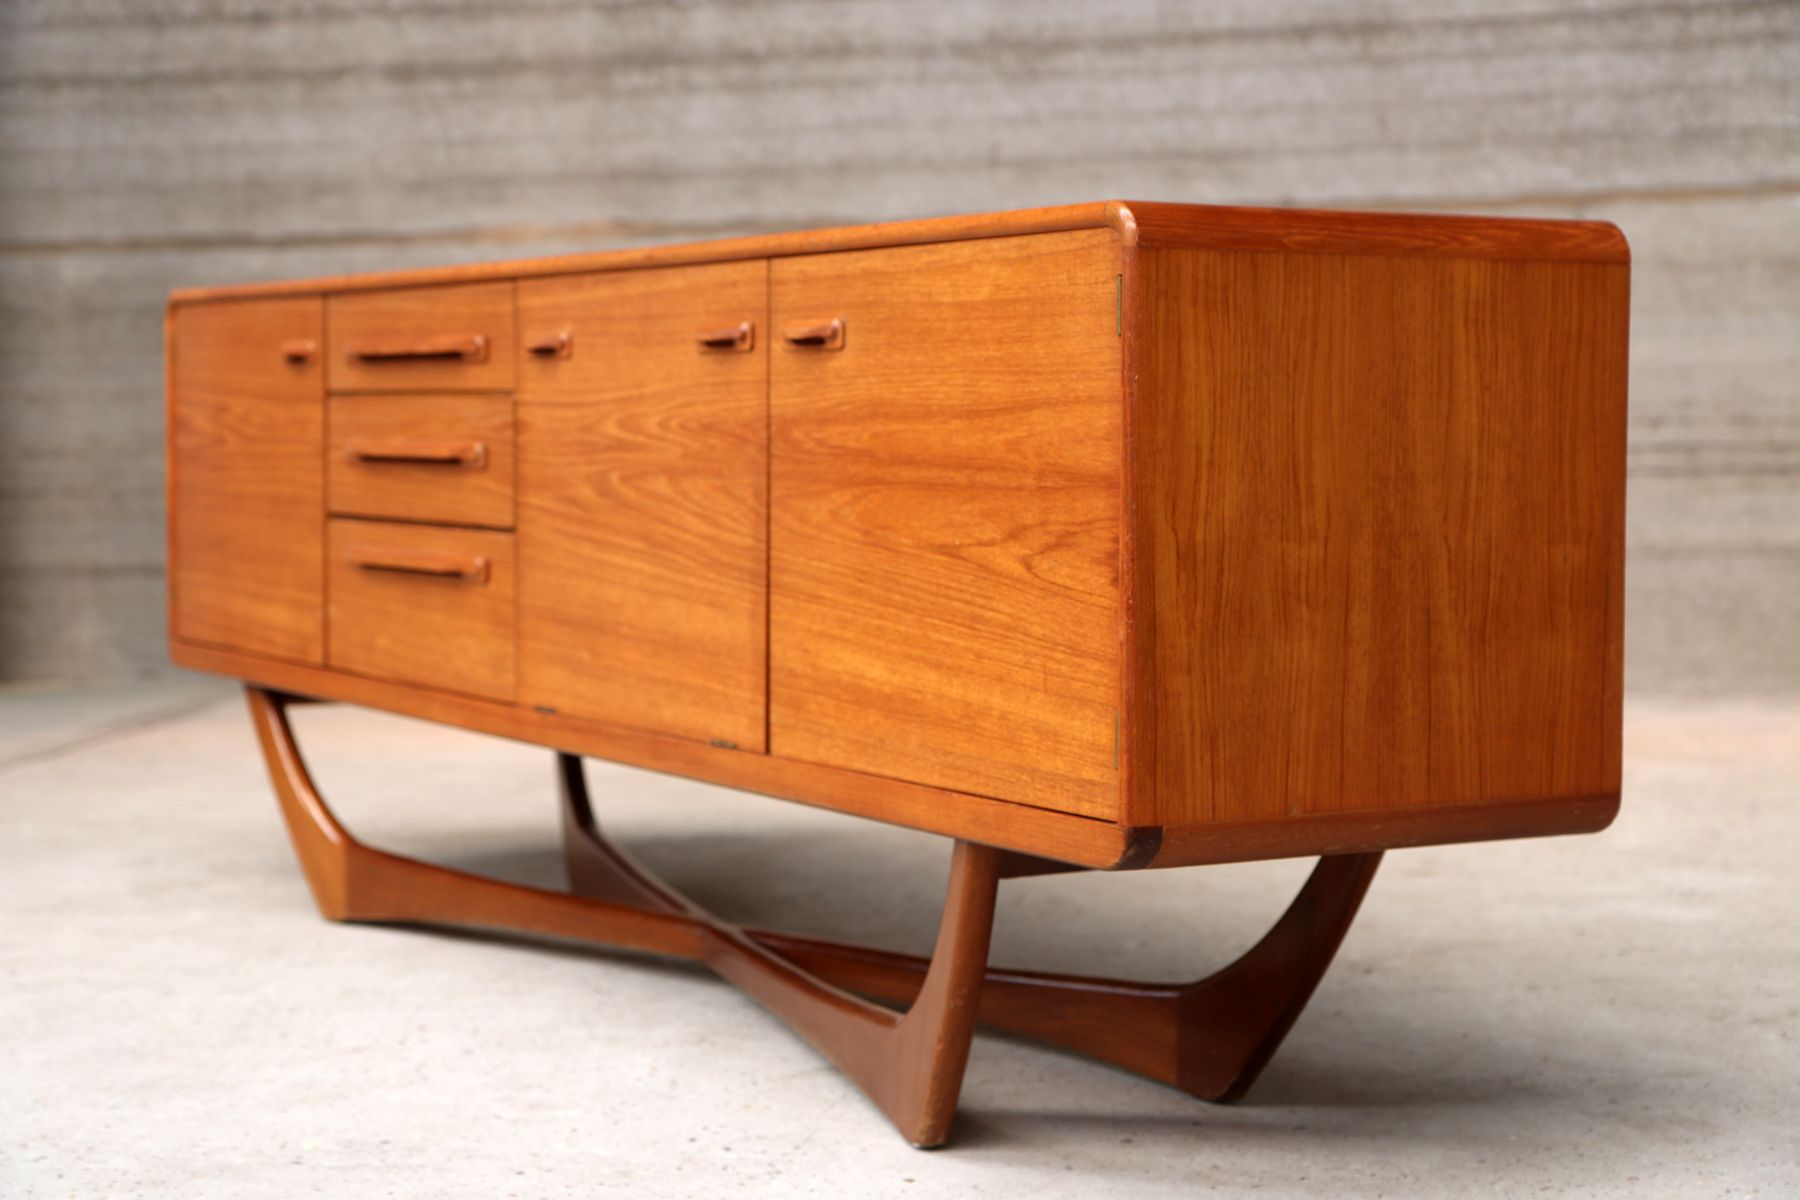 italienisches vintage sideboard aus teakholz 1960er bei pamono kaufen. Black Bedroom Furniture Sets. Home Design Ideas